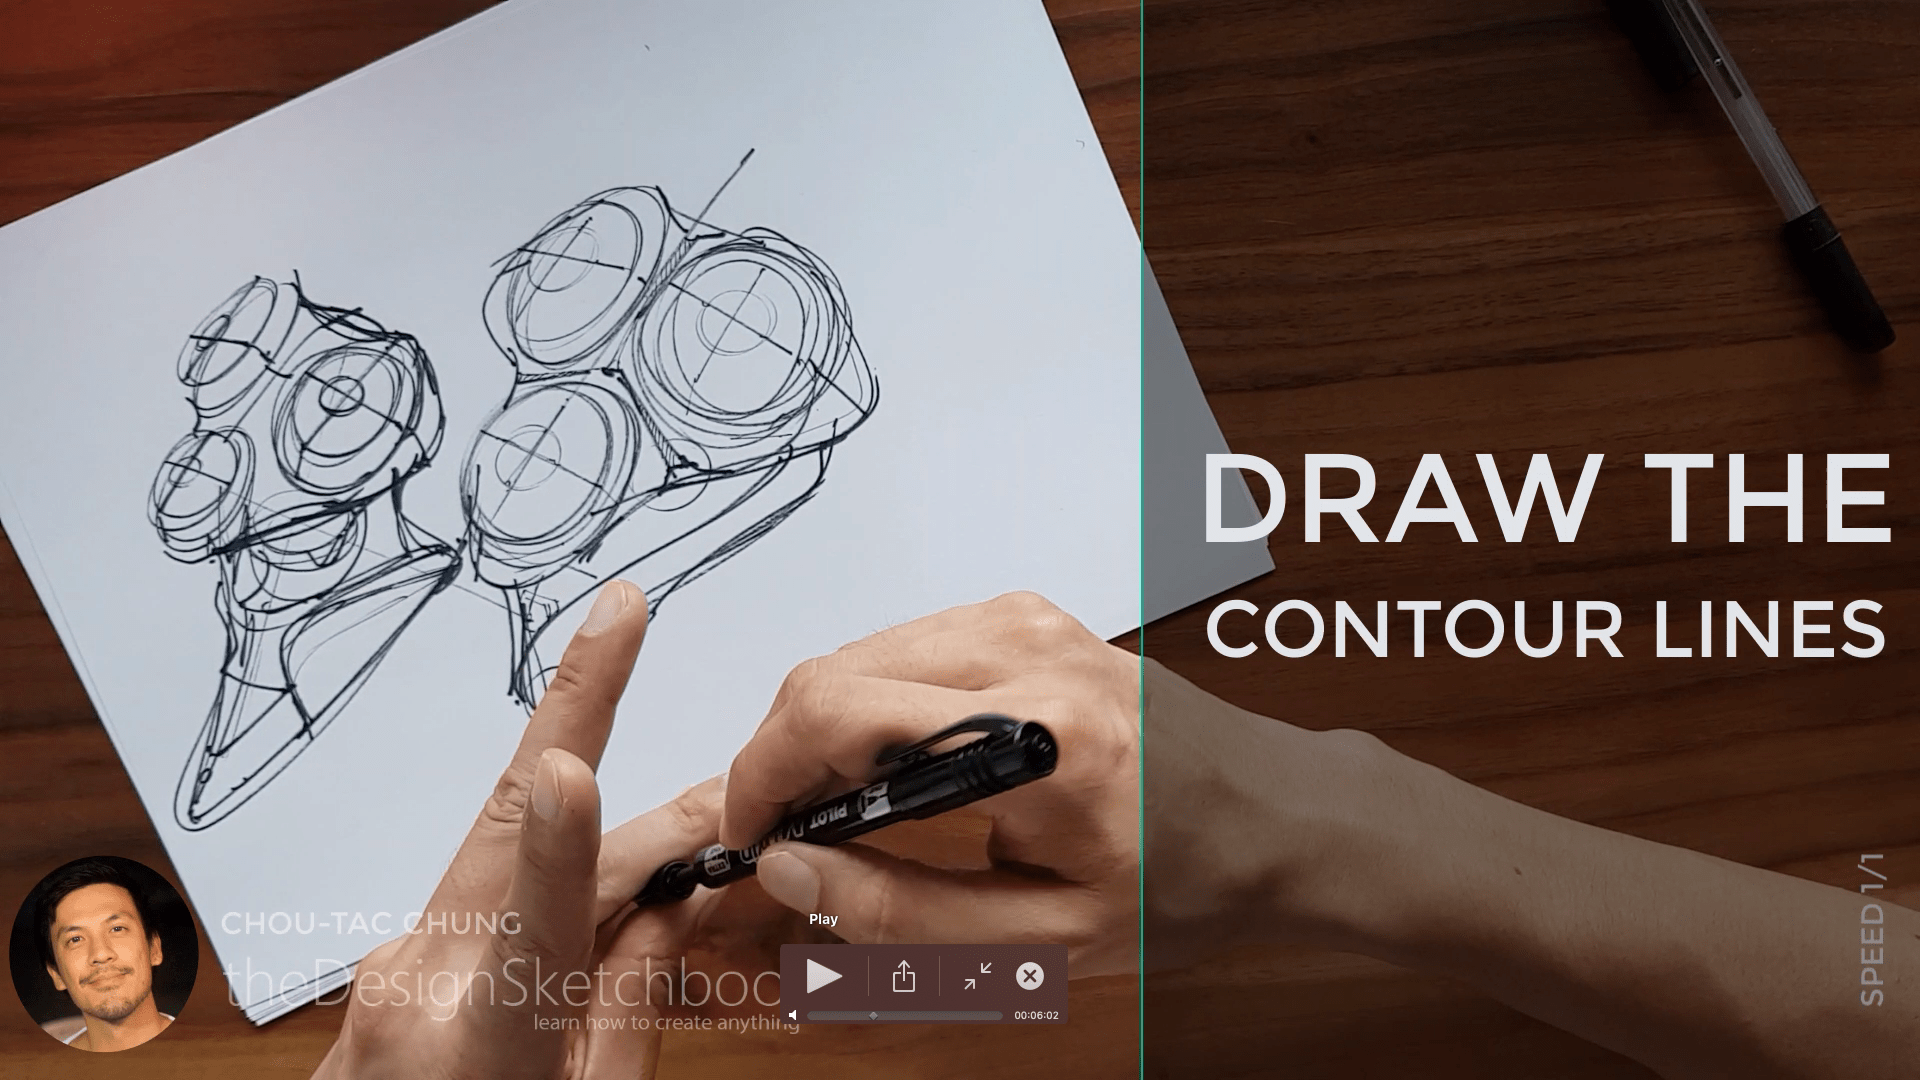 Sketching an electric shaver PHILIPS with the pilot twin marker pen - the design sketchbook - chung chou tac c9